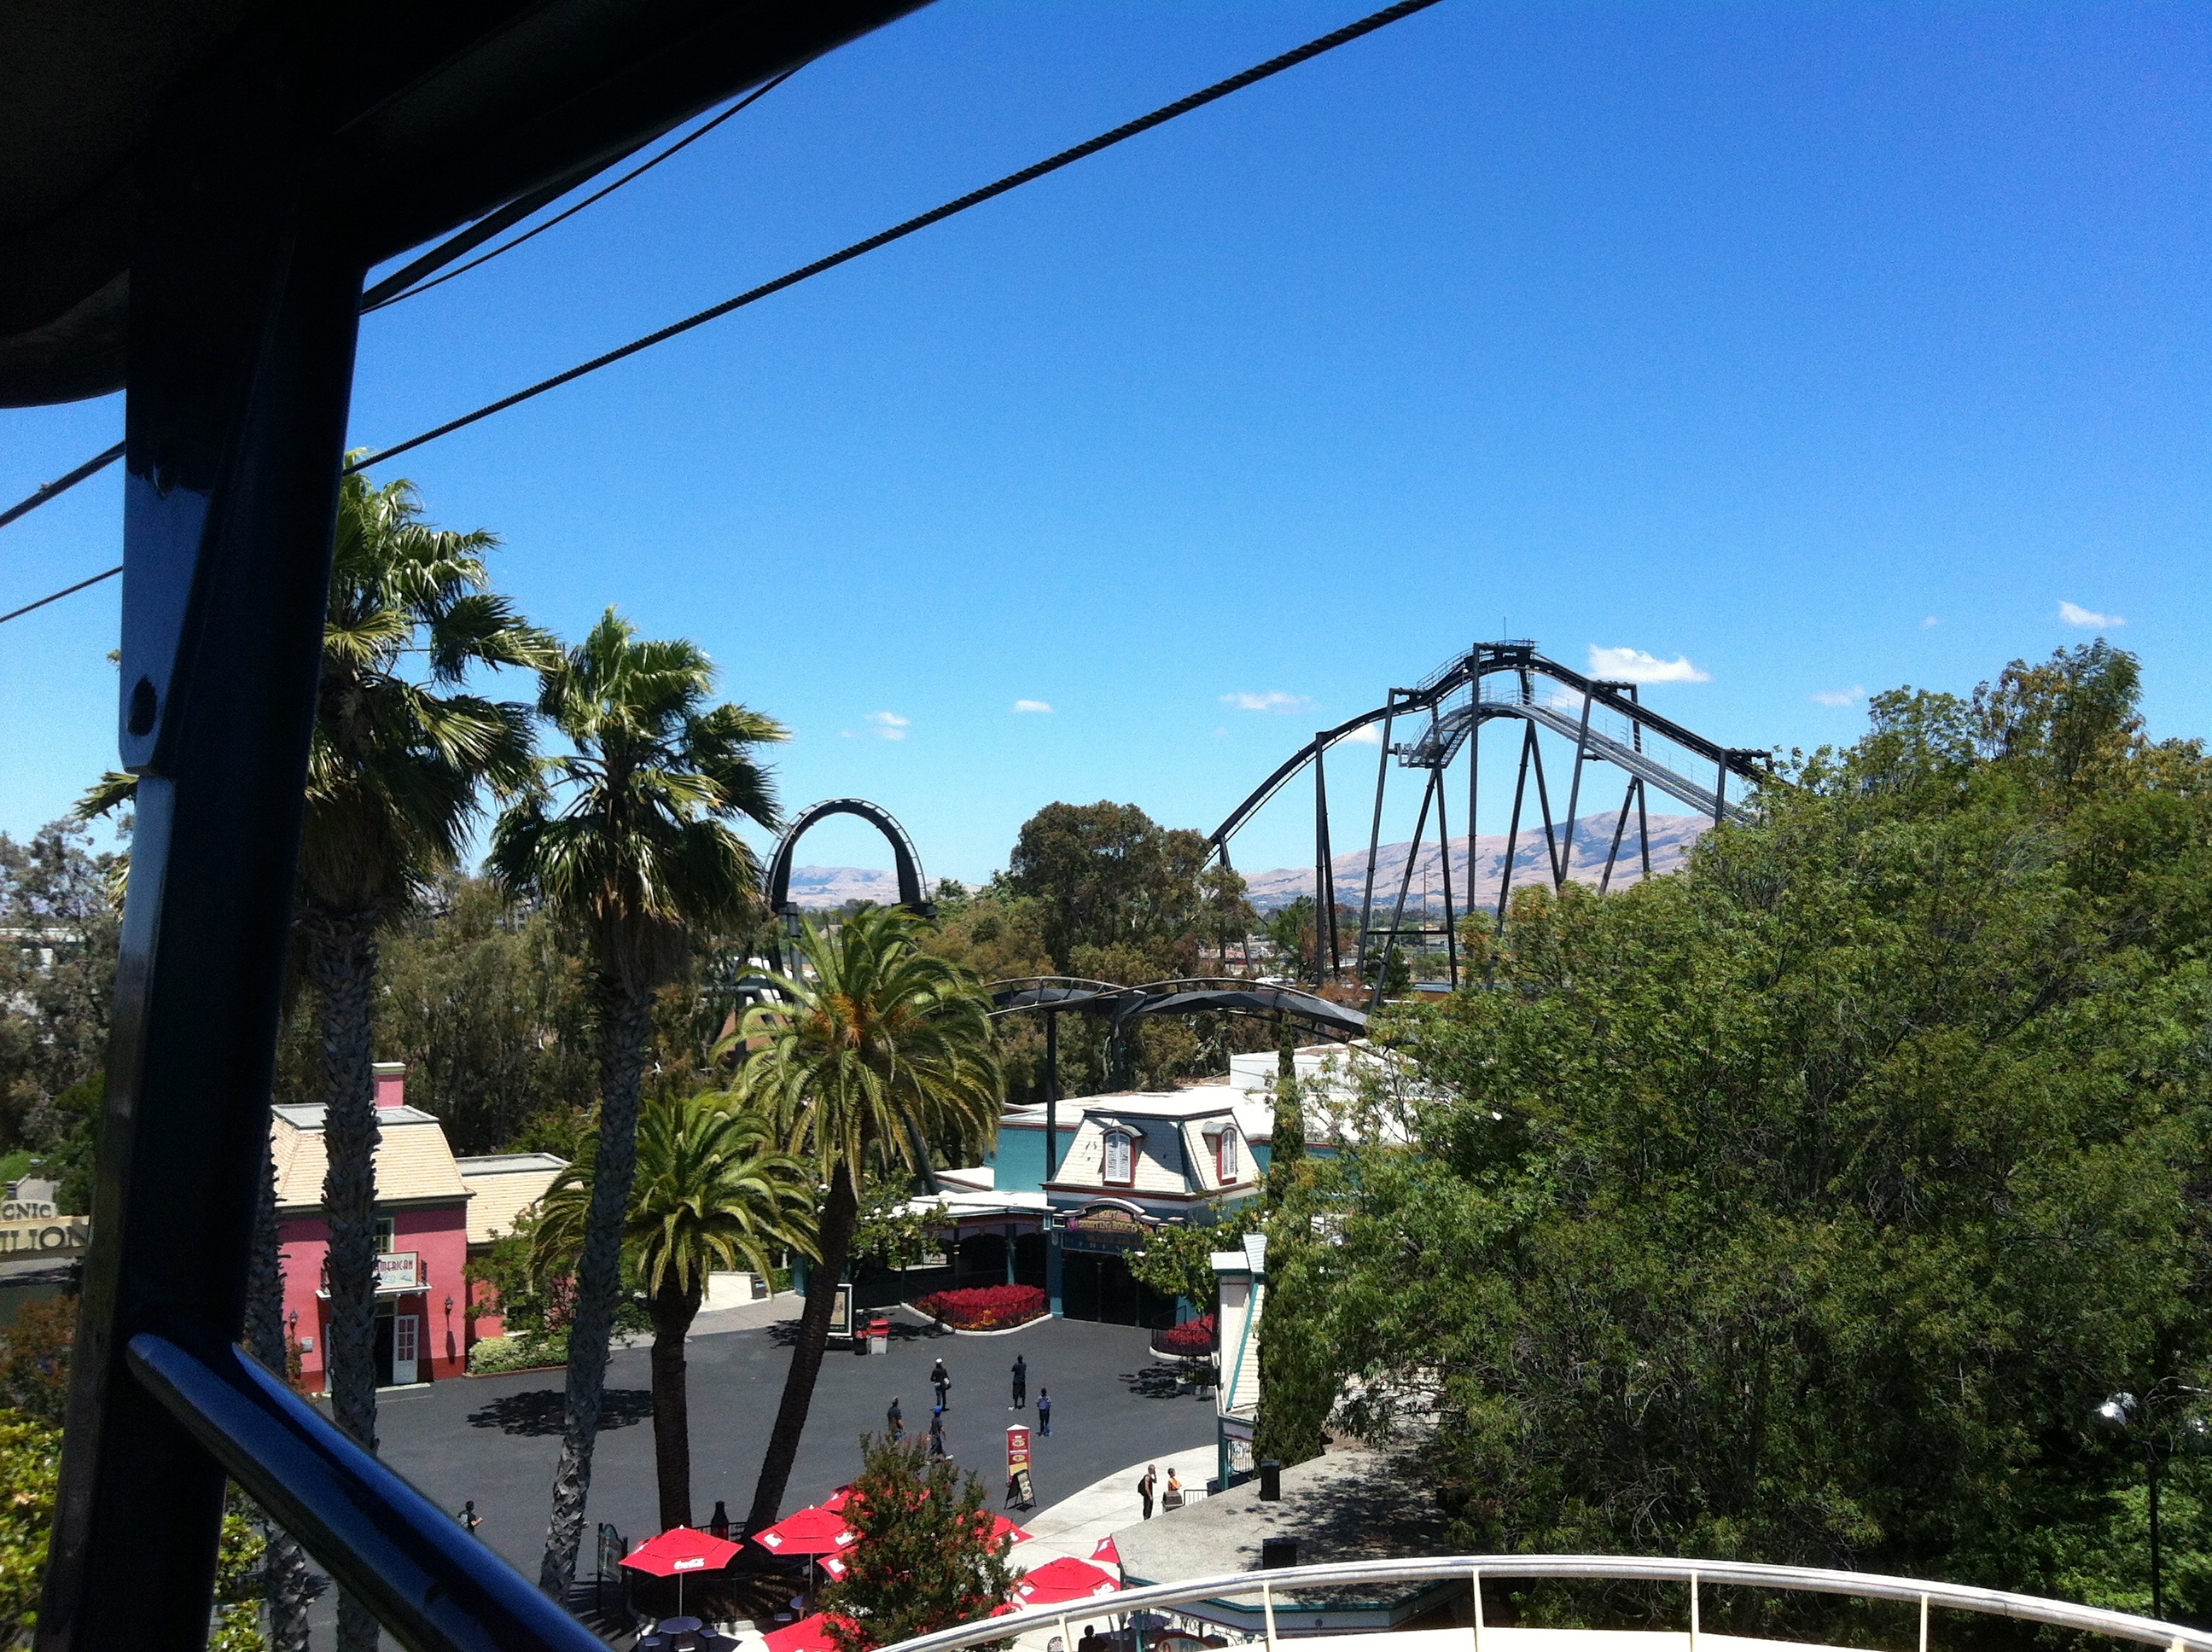 Flight Deck (California's Great America)